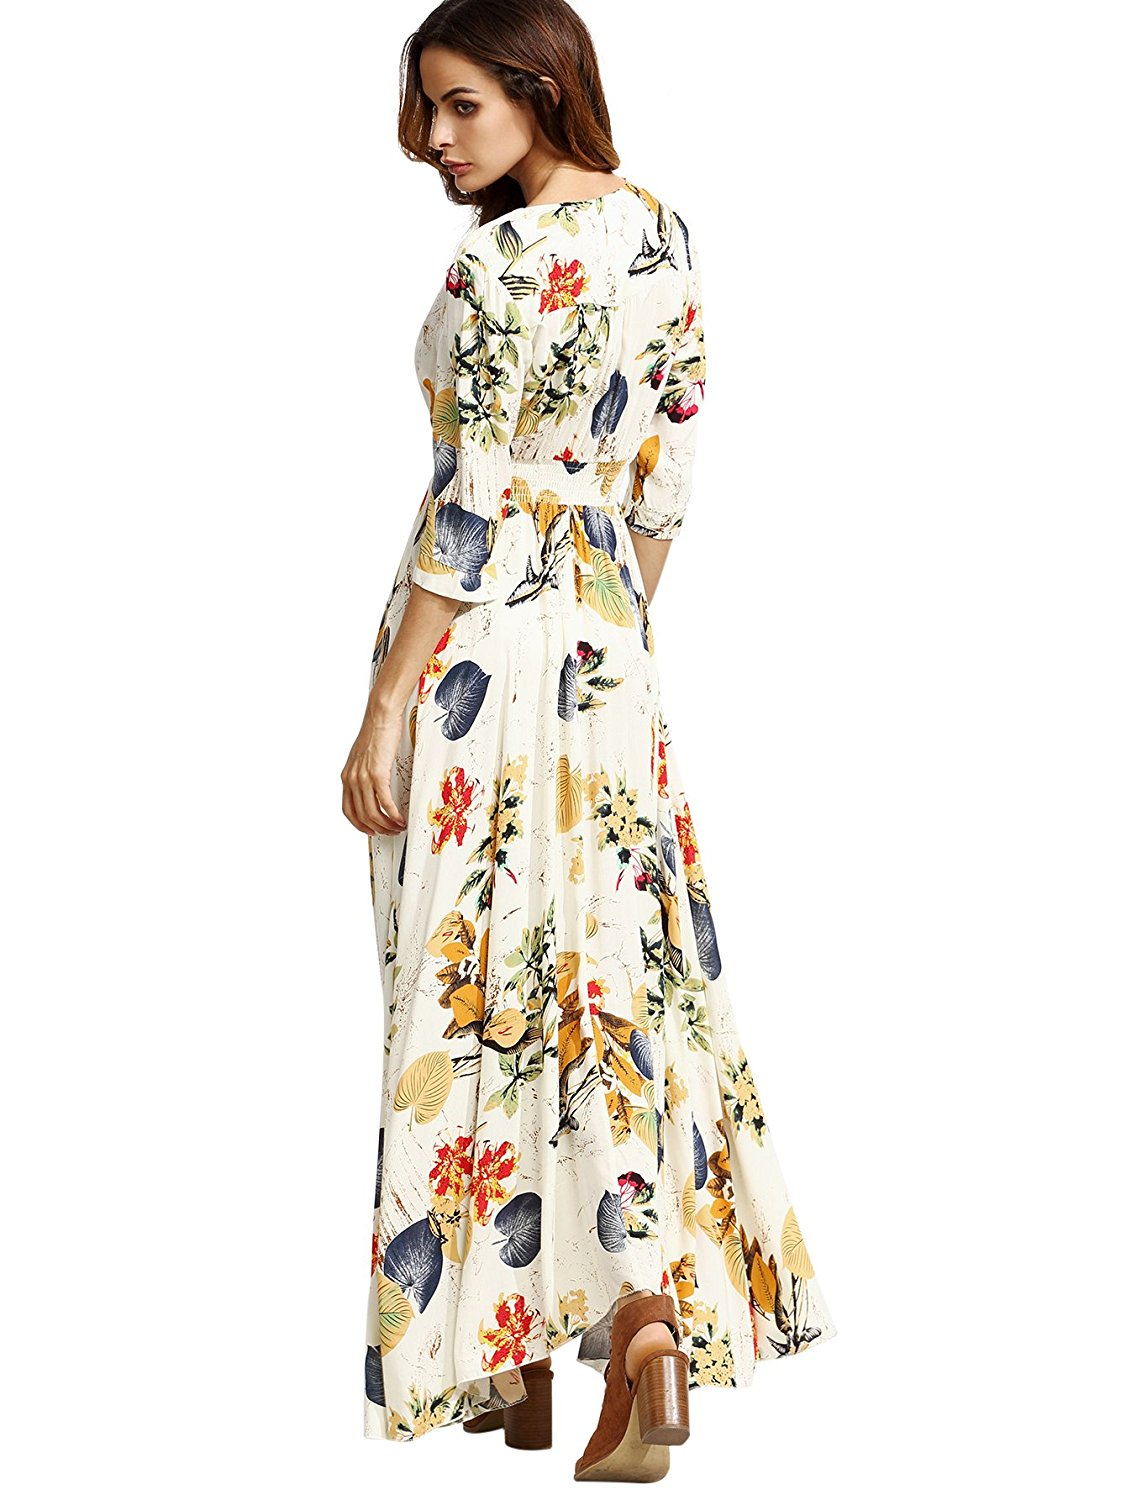 ae0902c62ef Women s Button Up Split Floral Print Flowy Party Maxi Dress-in Dresses from  Women s Clothing on Aliexpress.com